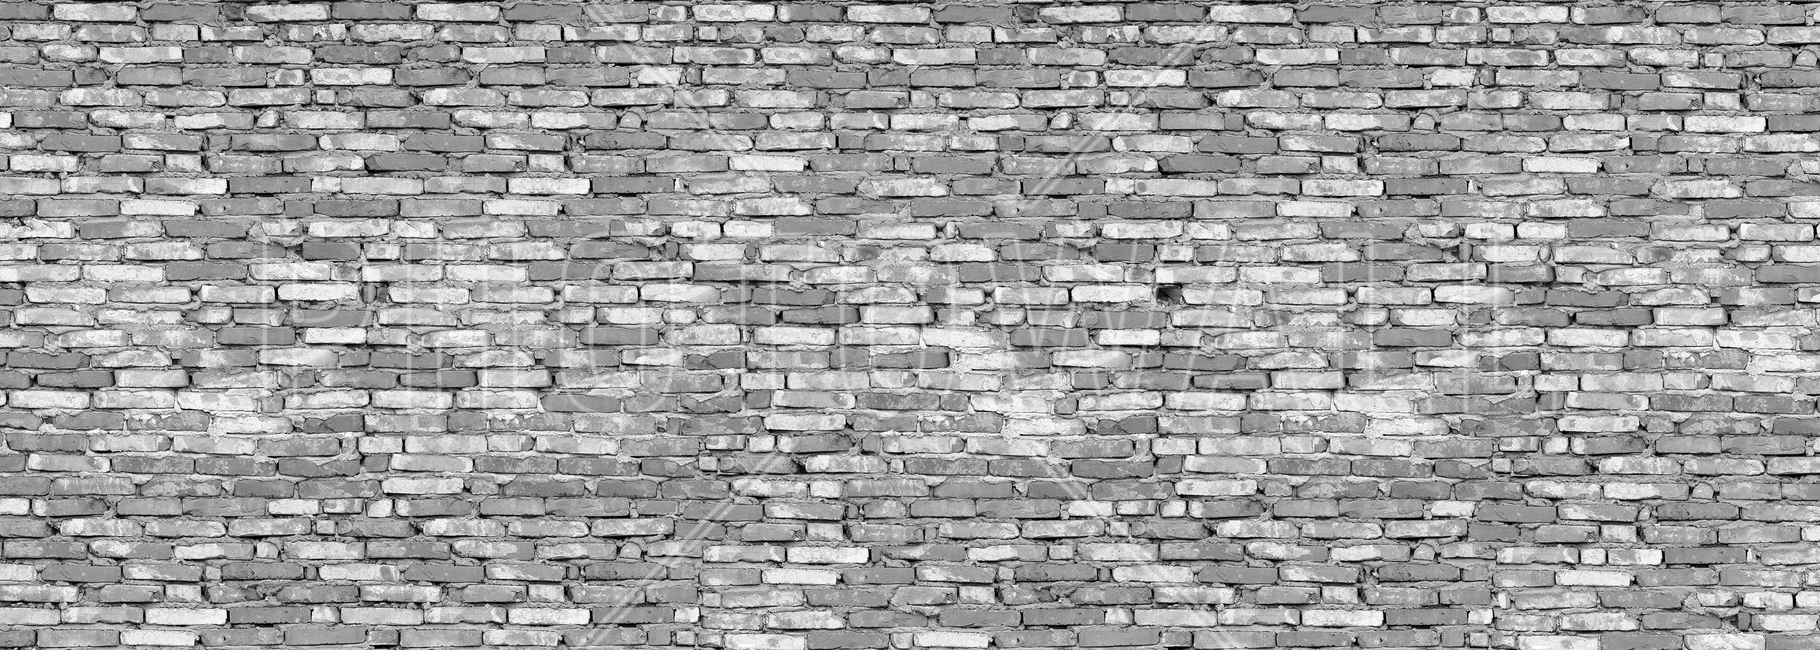 Old Brick Wall - Grey